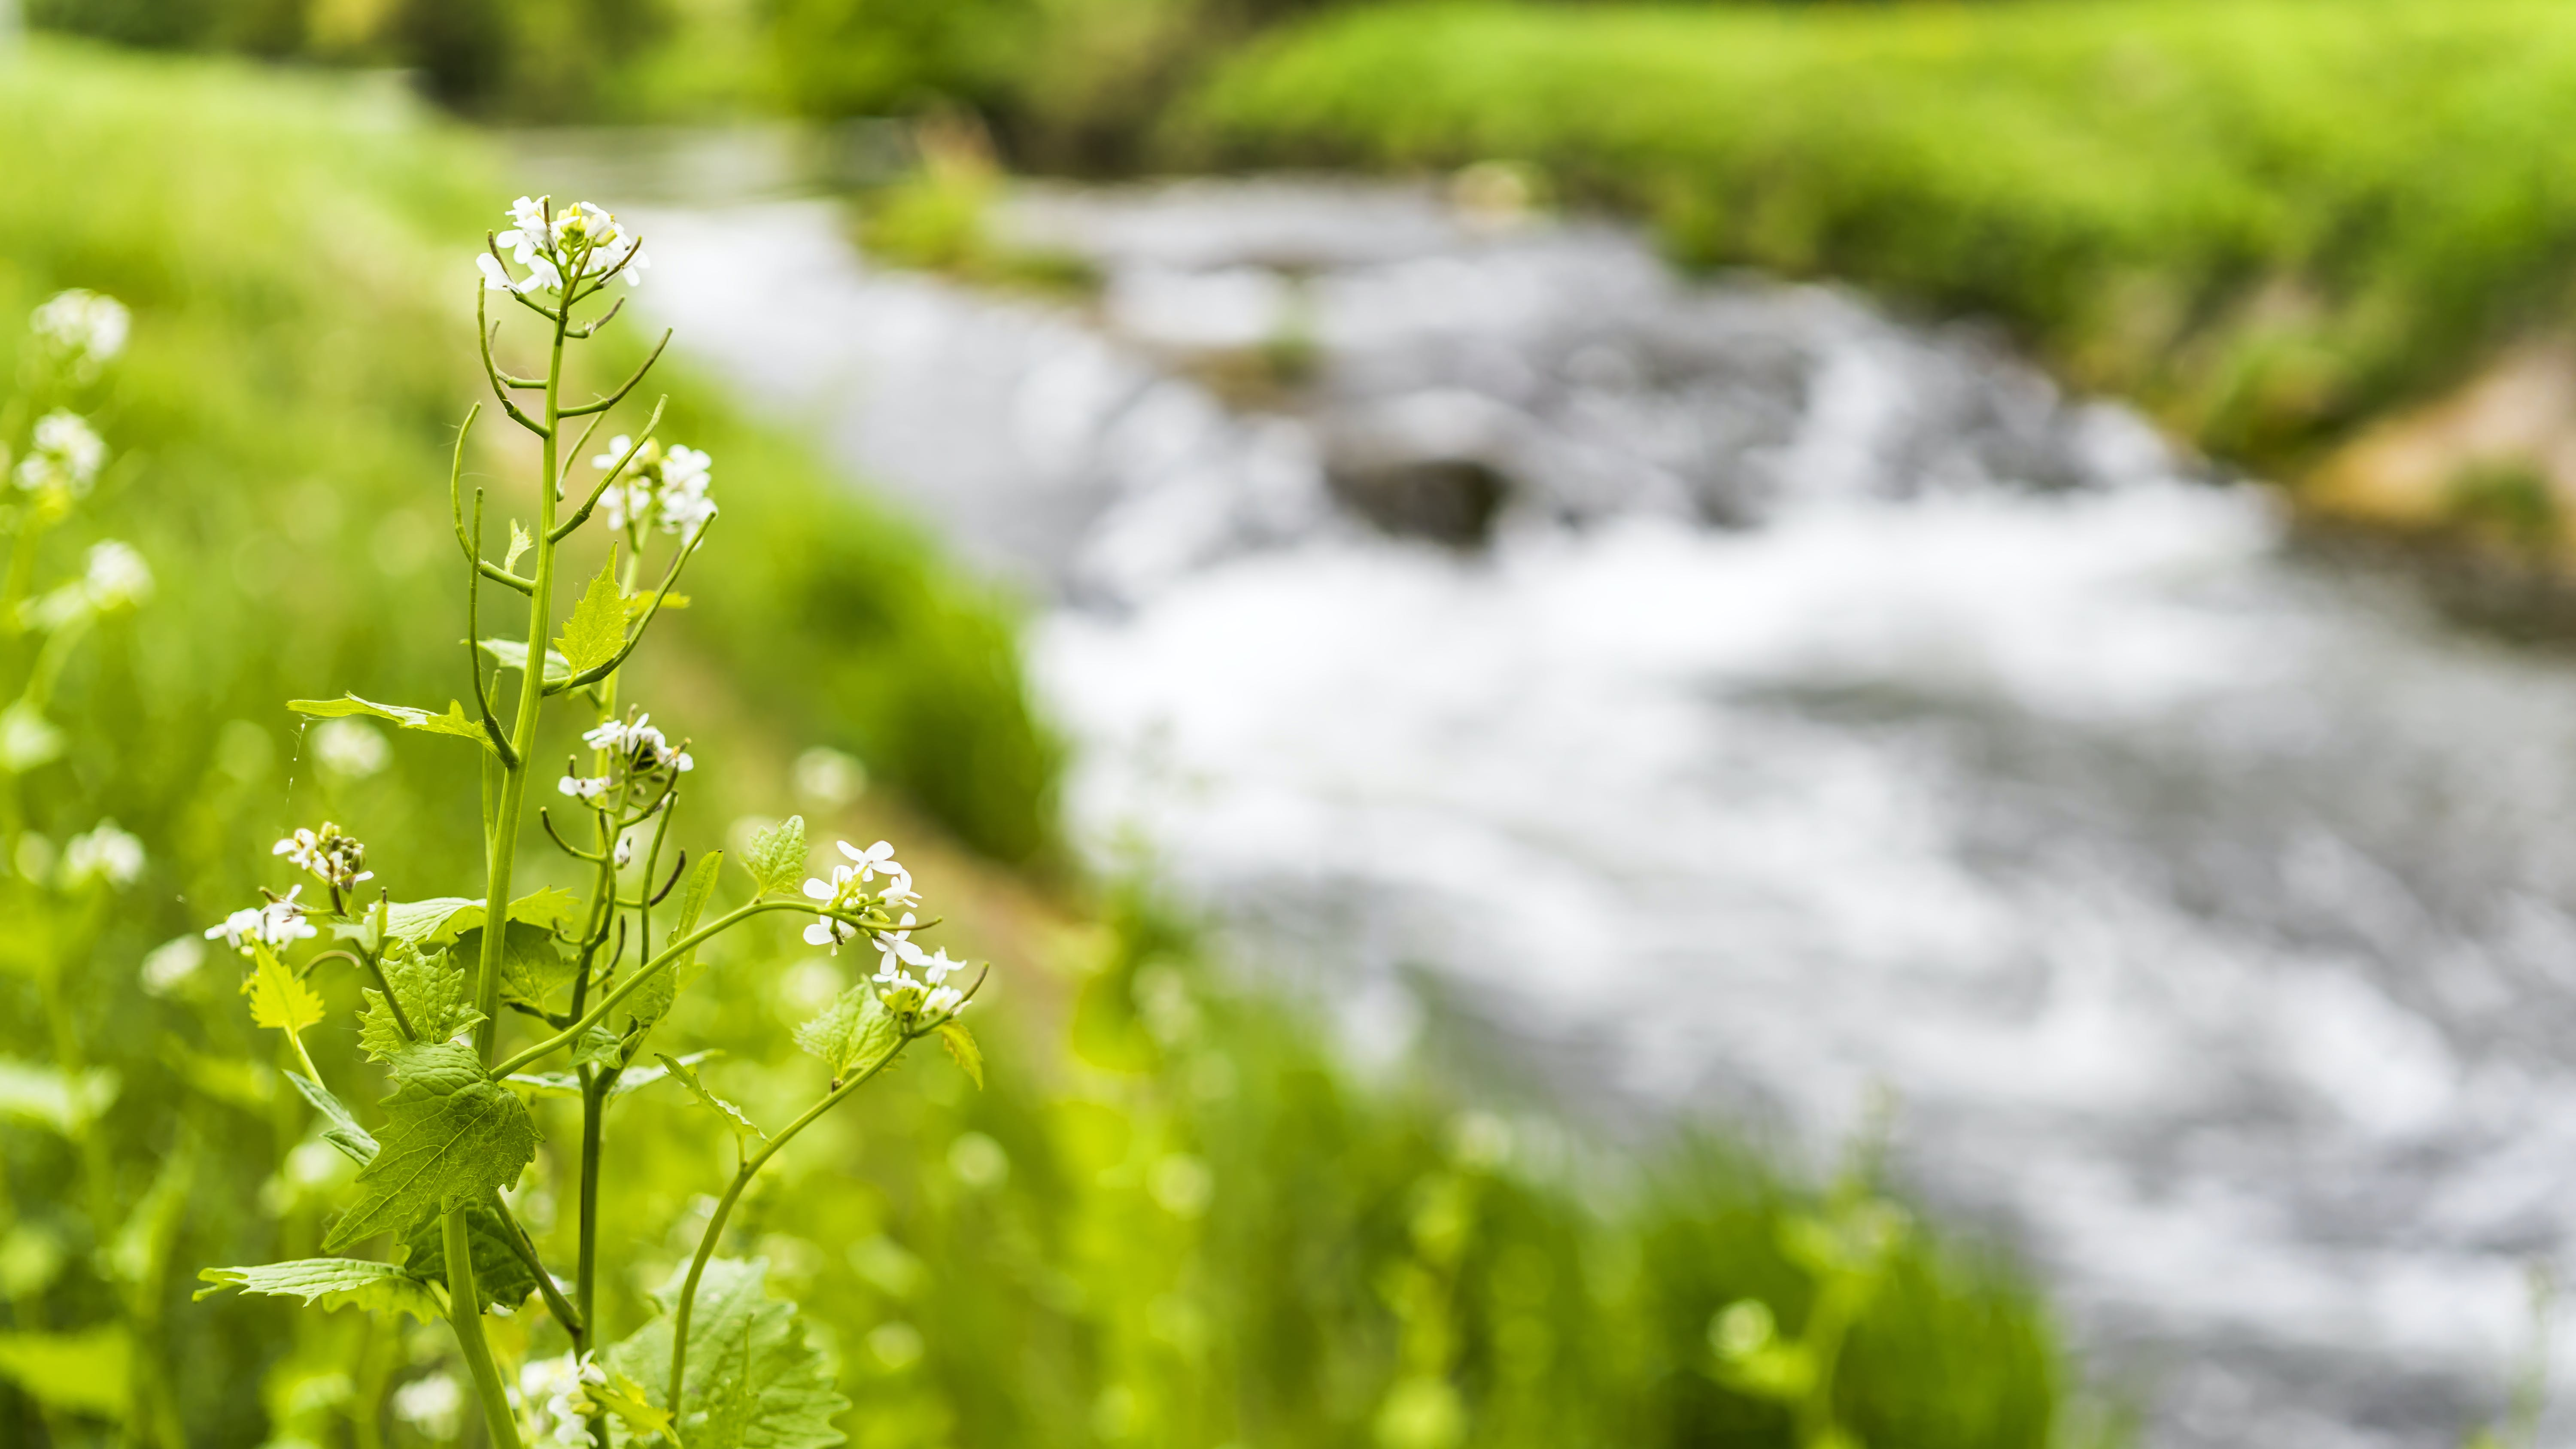 White Petaled Flowers Near the River Graphic Wallpaper